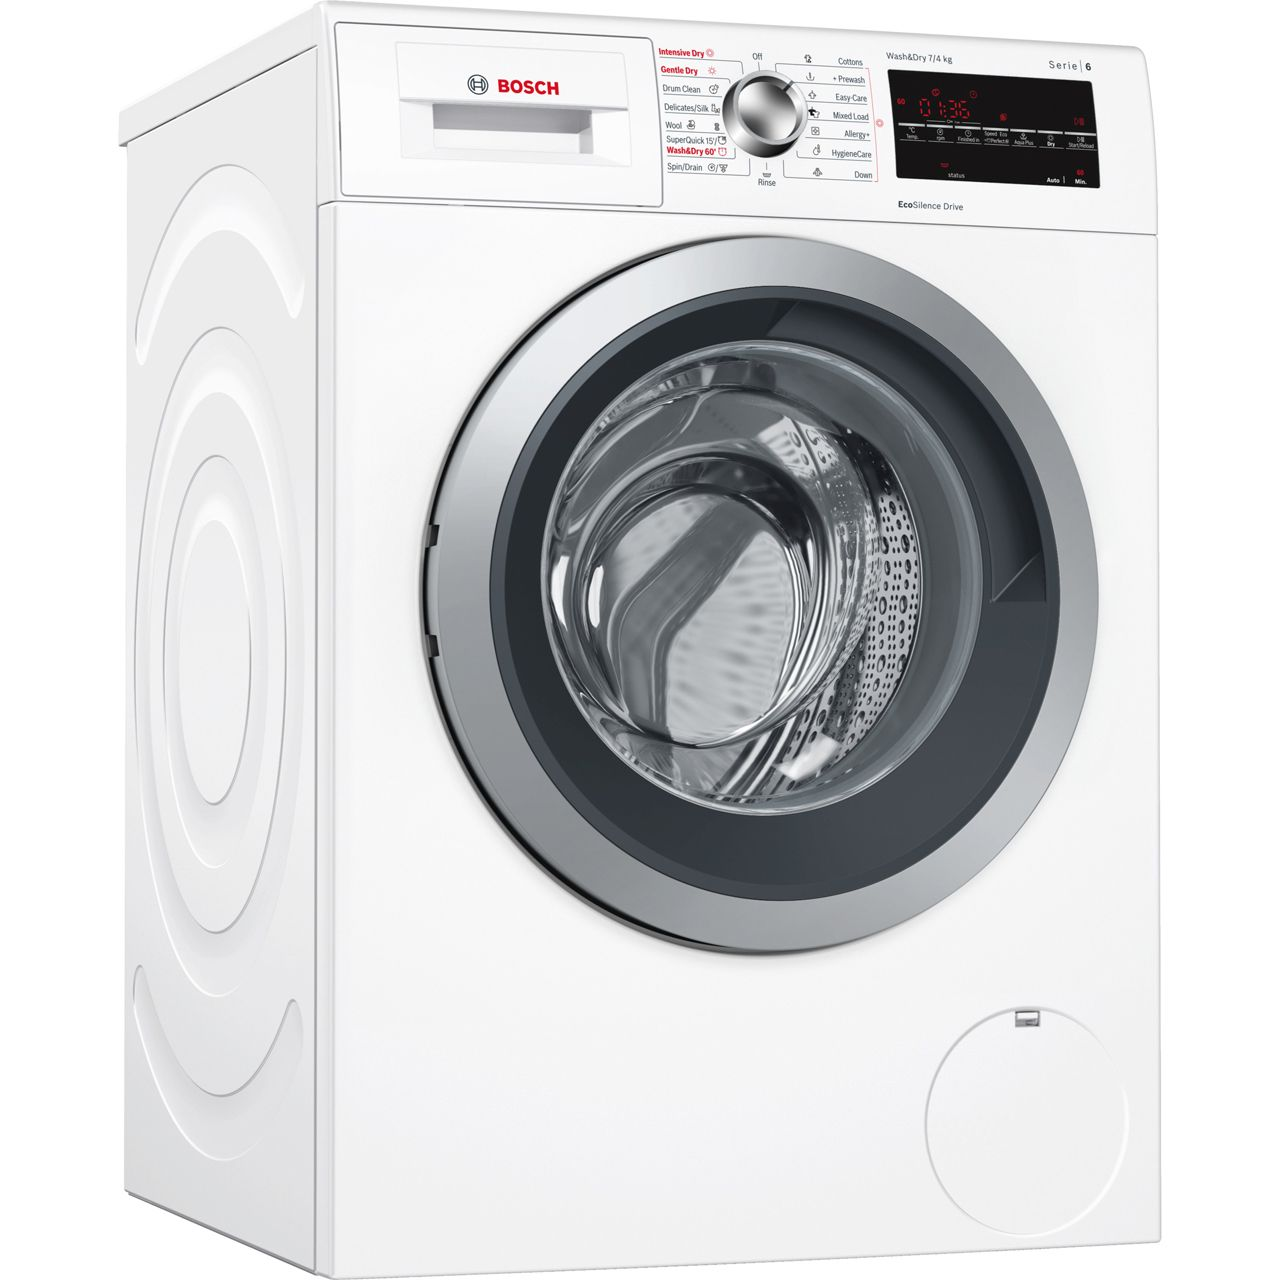 Bosch Serie 6 Wvg30462gb 7kg 4kg Washer Dryer With 1500 Rpm White A Rated Washing Machine Bosch Washing Machine Washer And Dryer